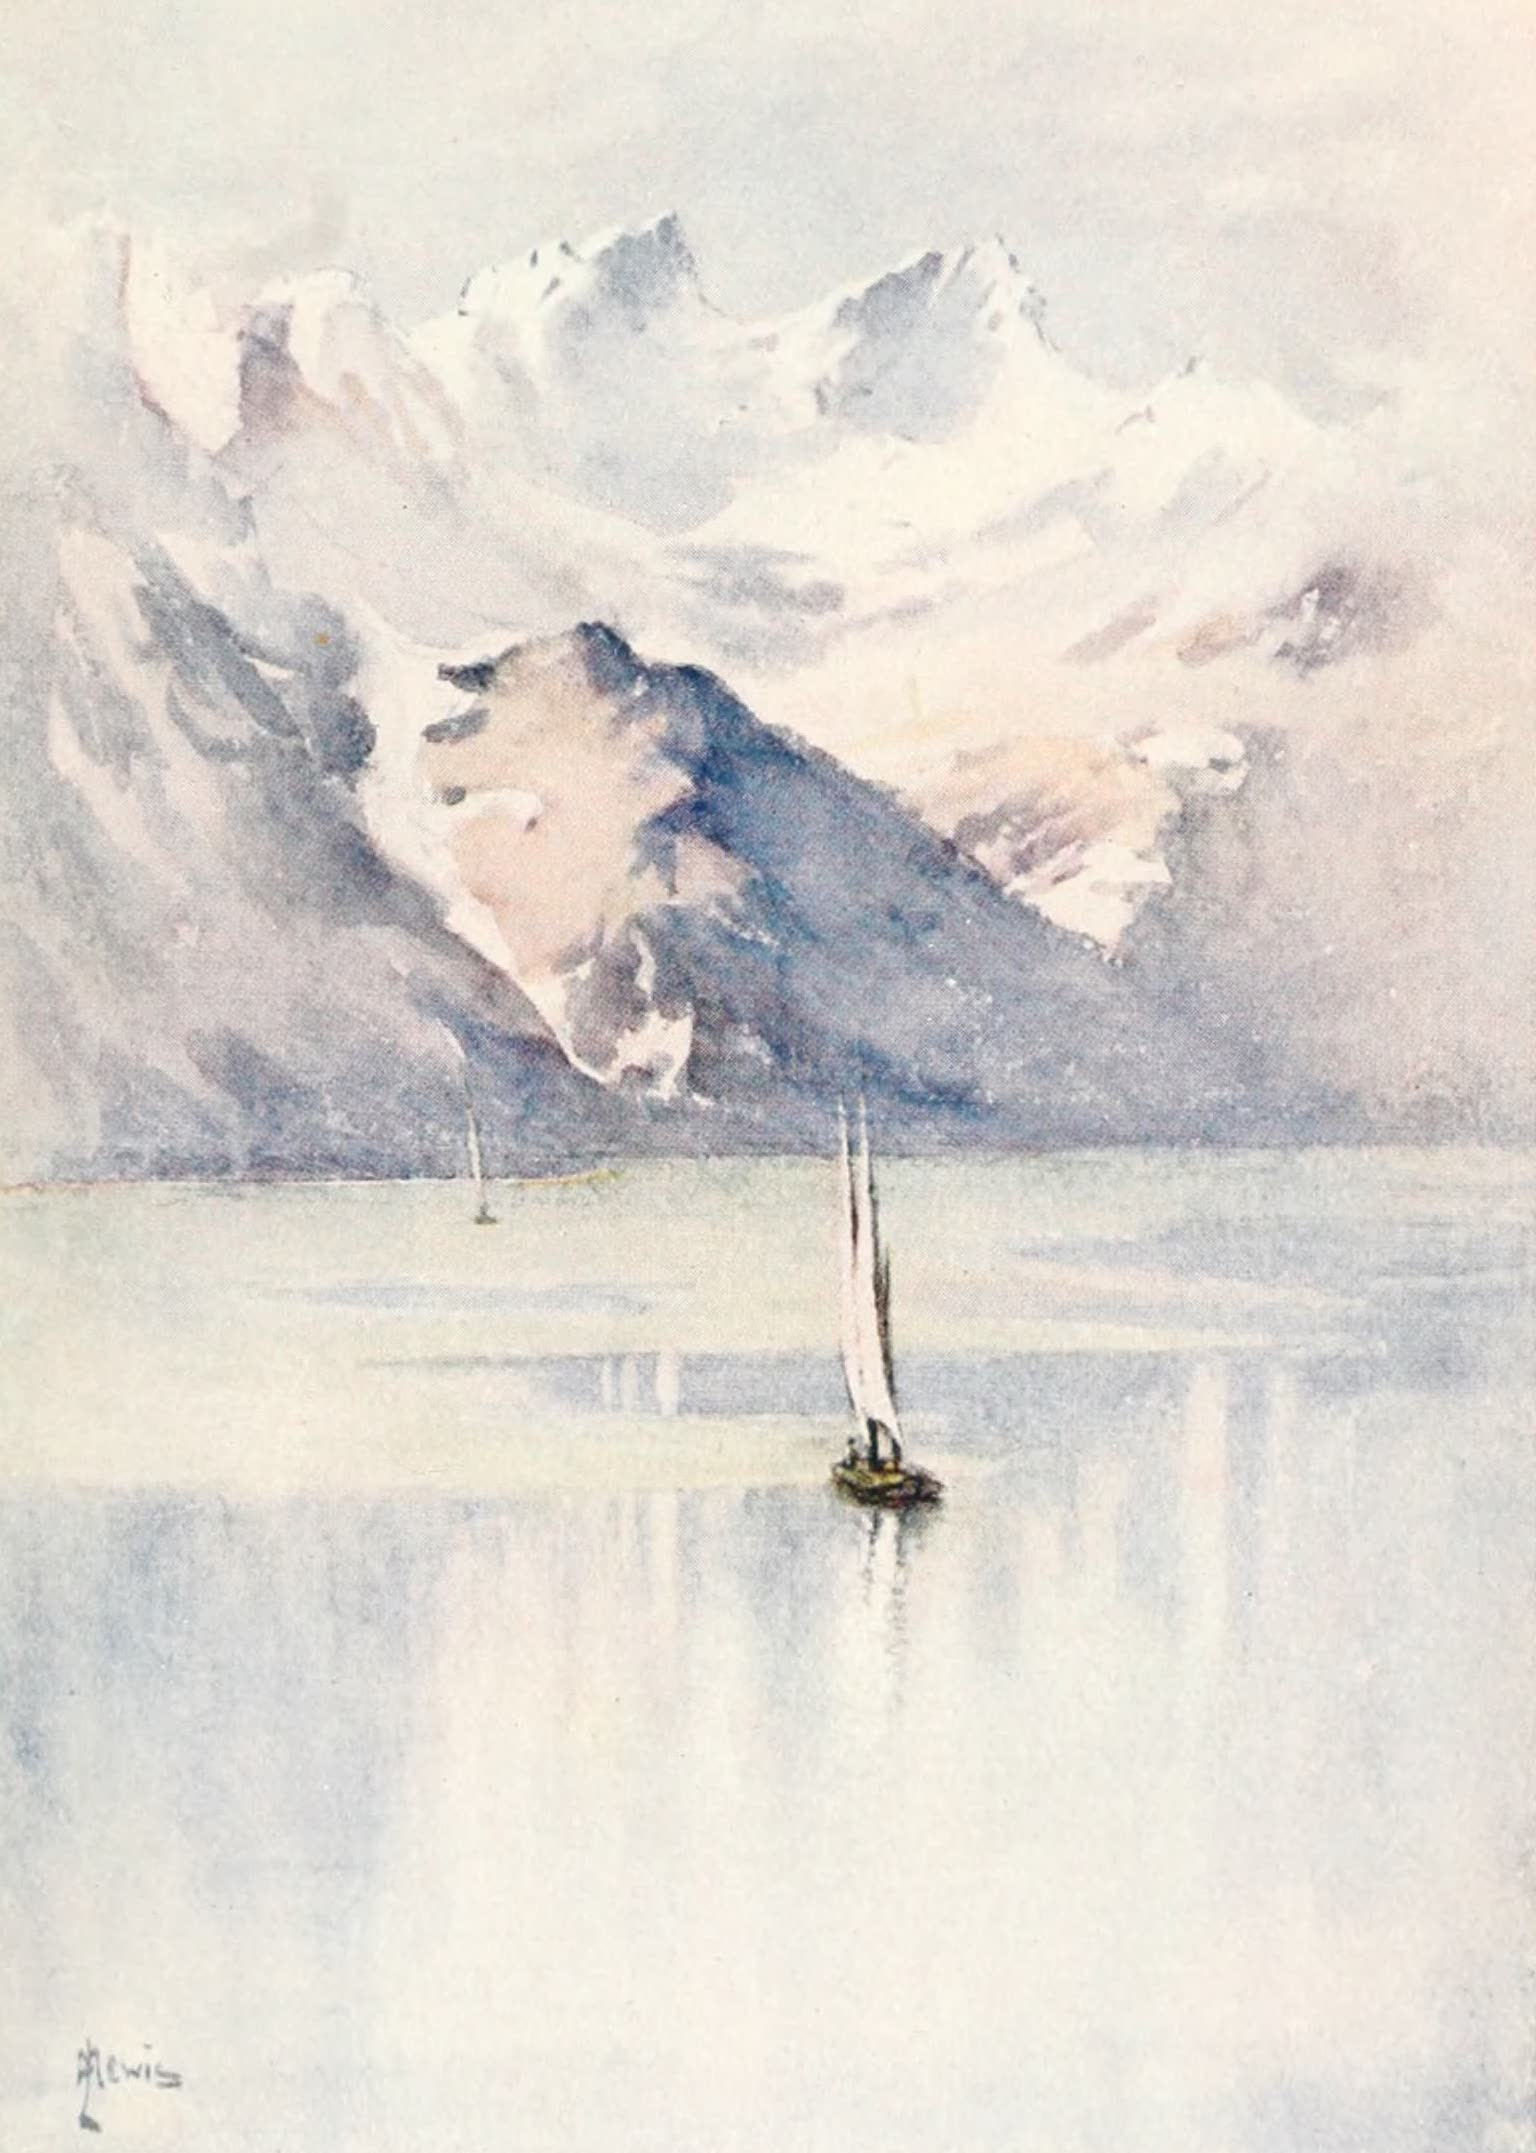 Montreux, Painted and Described - The Dents d'Oche, Savoy Alps (1908)